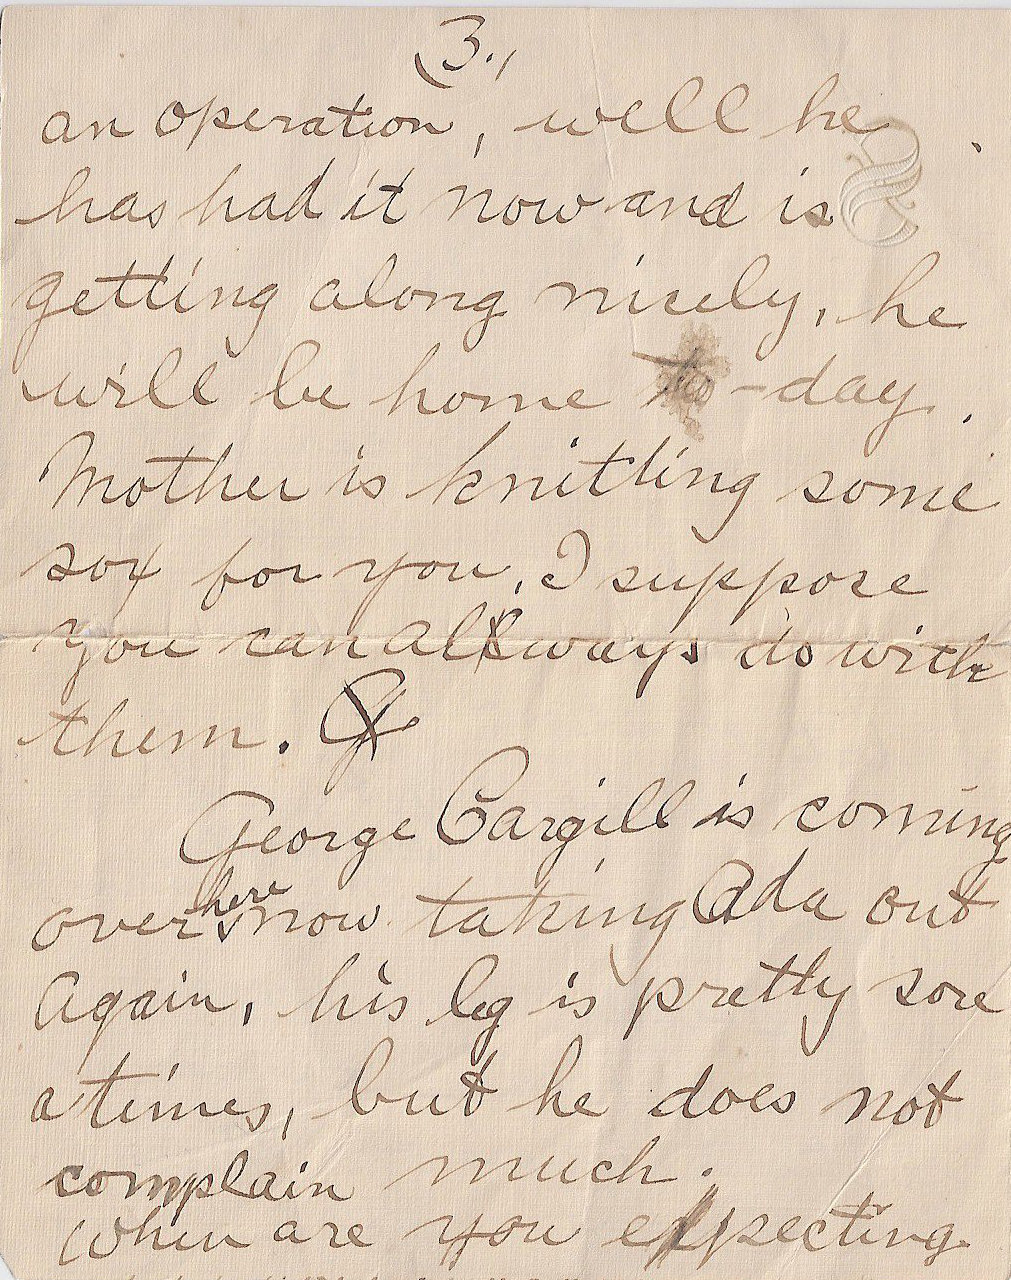 Letter to FREDERICK CHARLES SWAIT– The third of four pages of a letter sent from my grandmother to Uncle Fred, returned to her because he was deceased.